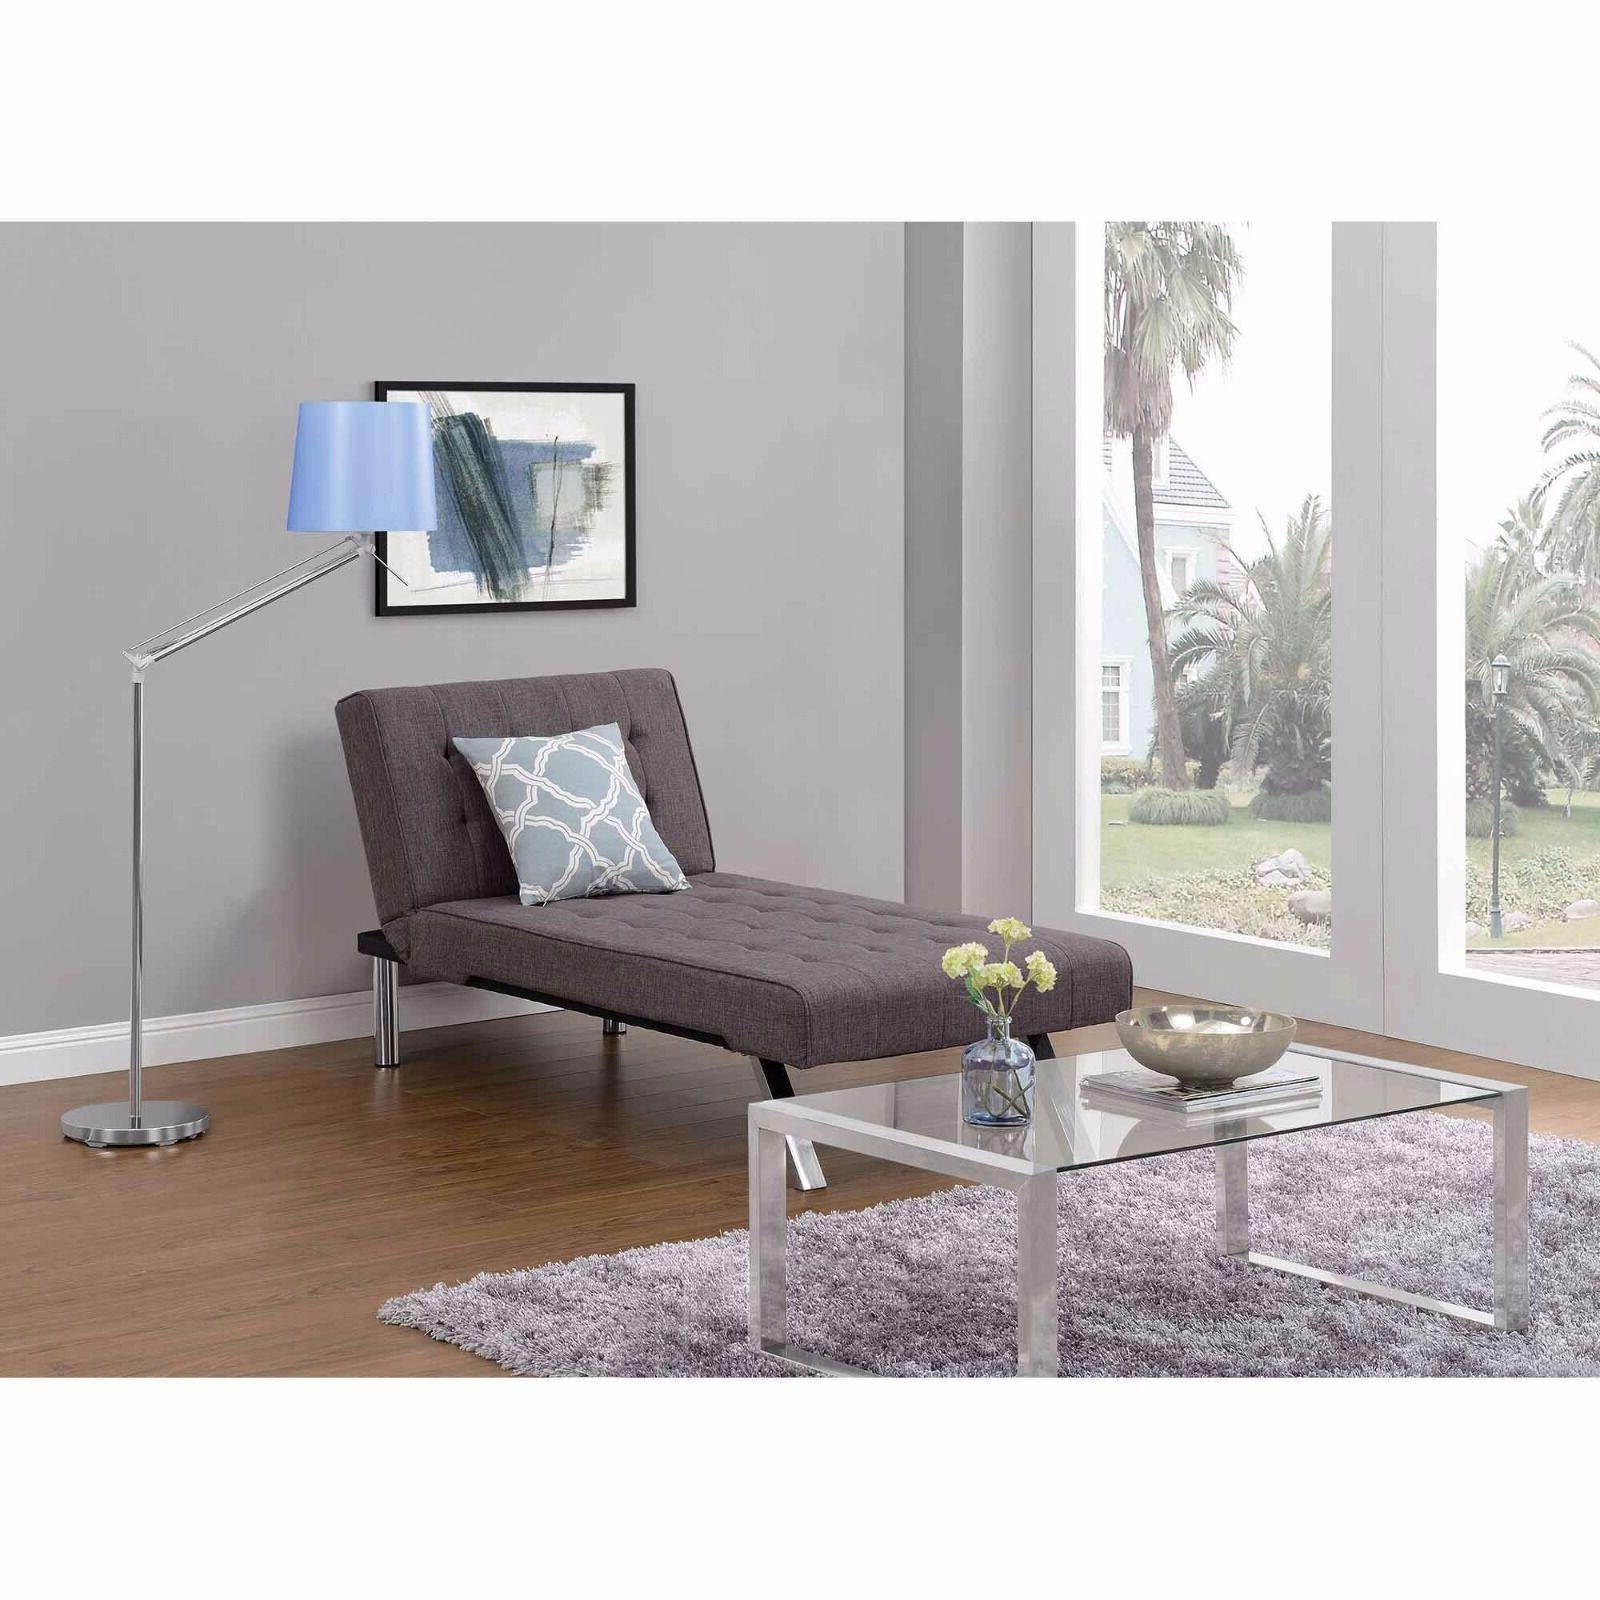 Sectional Grey Sofa Couch Futon & Chaise Set Modern